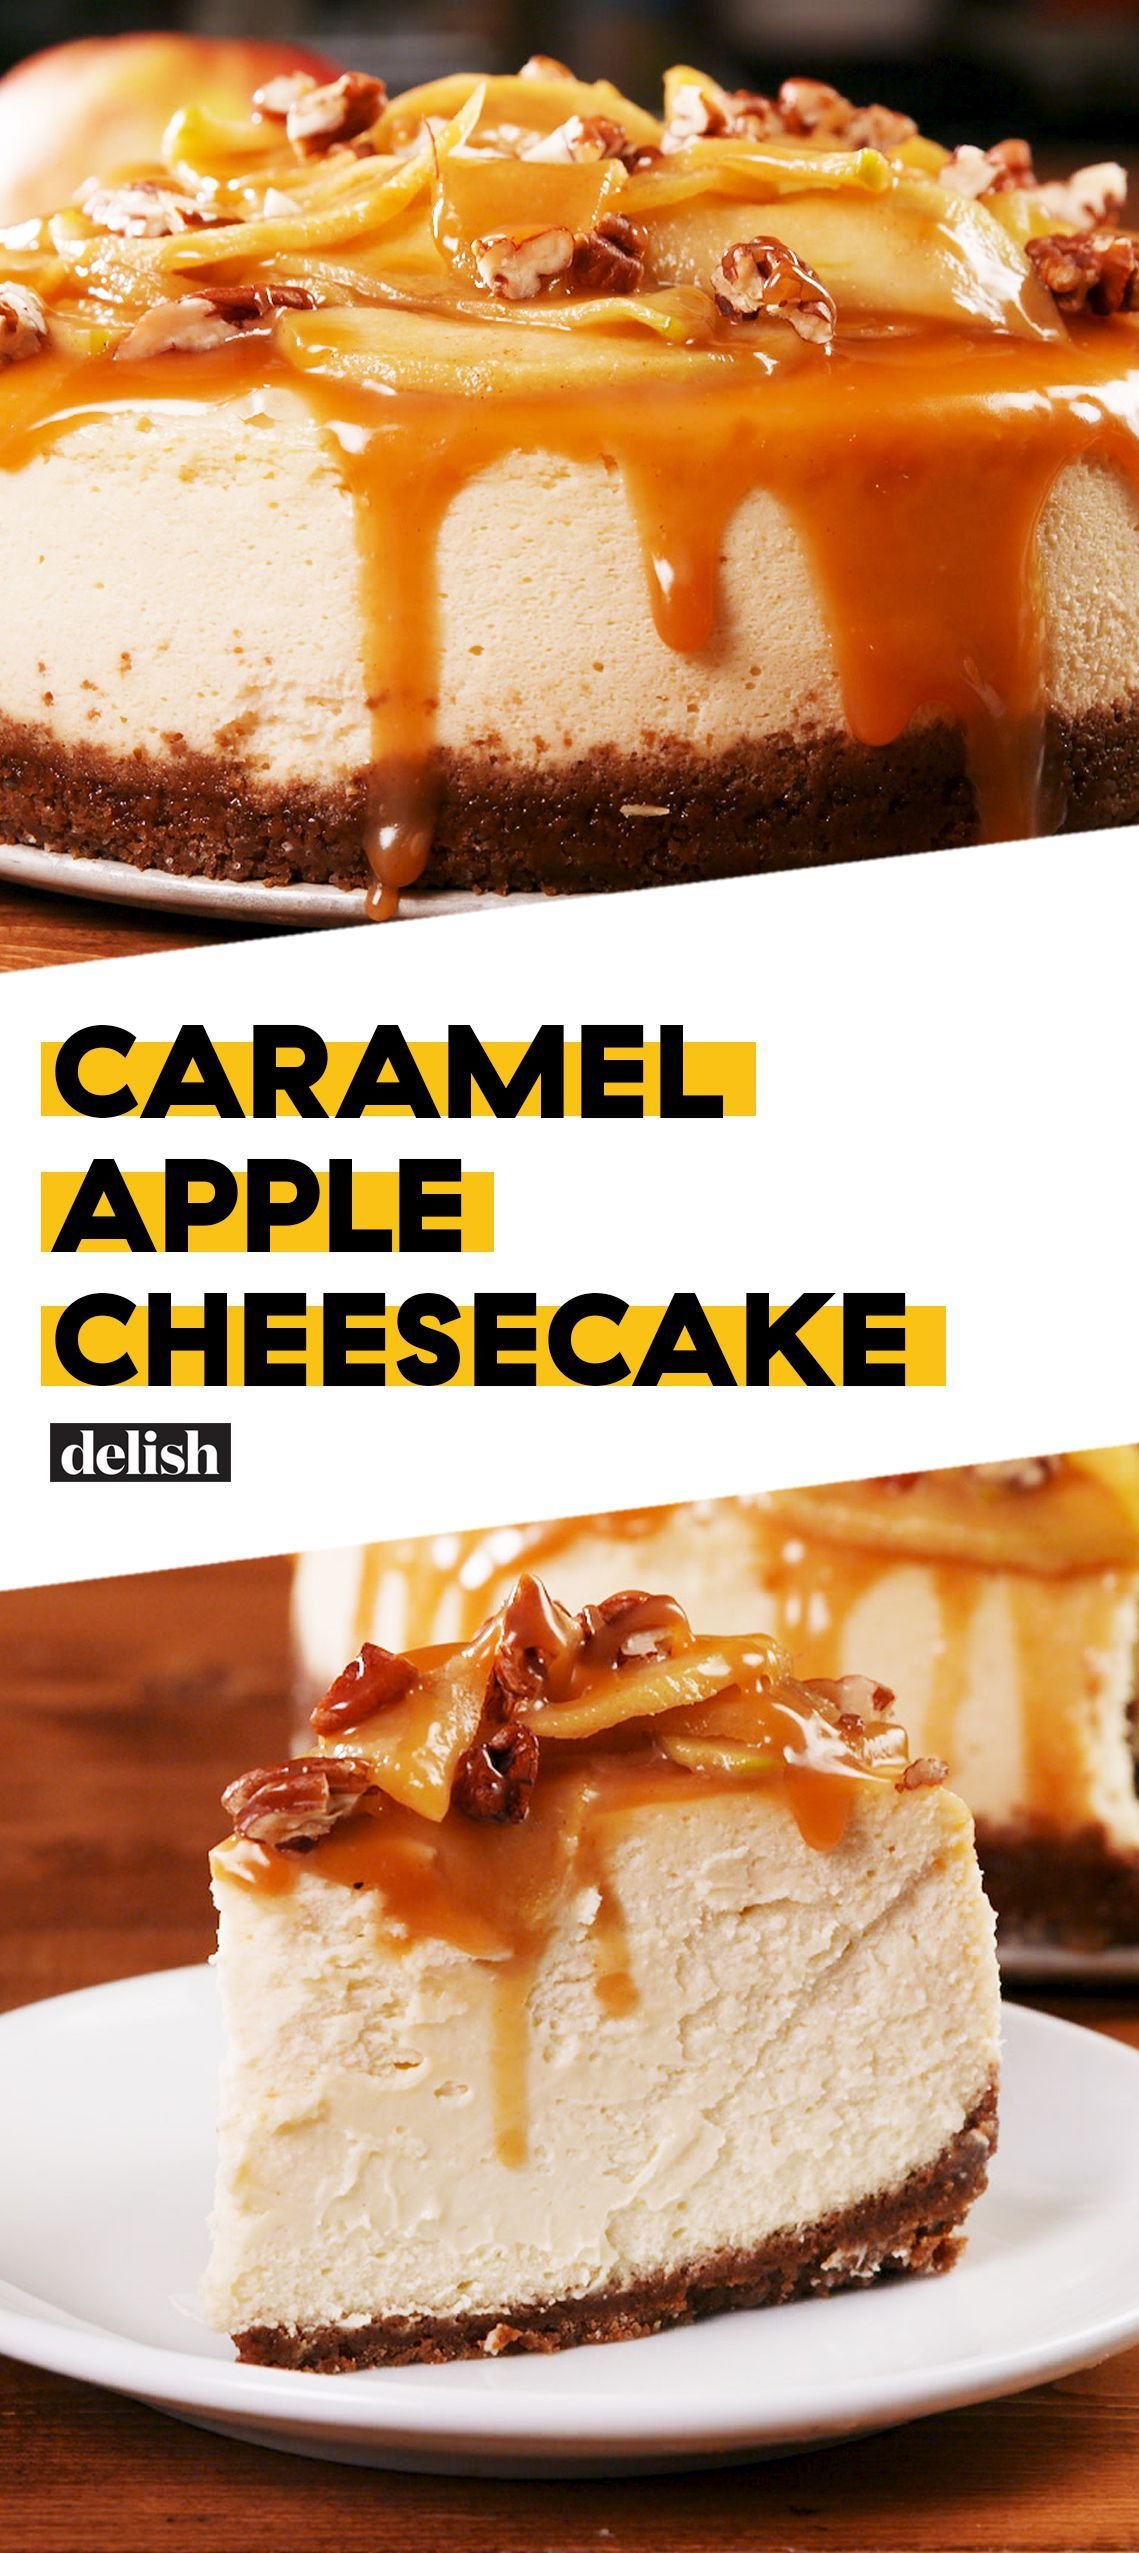 20 apple cheesecake recipes